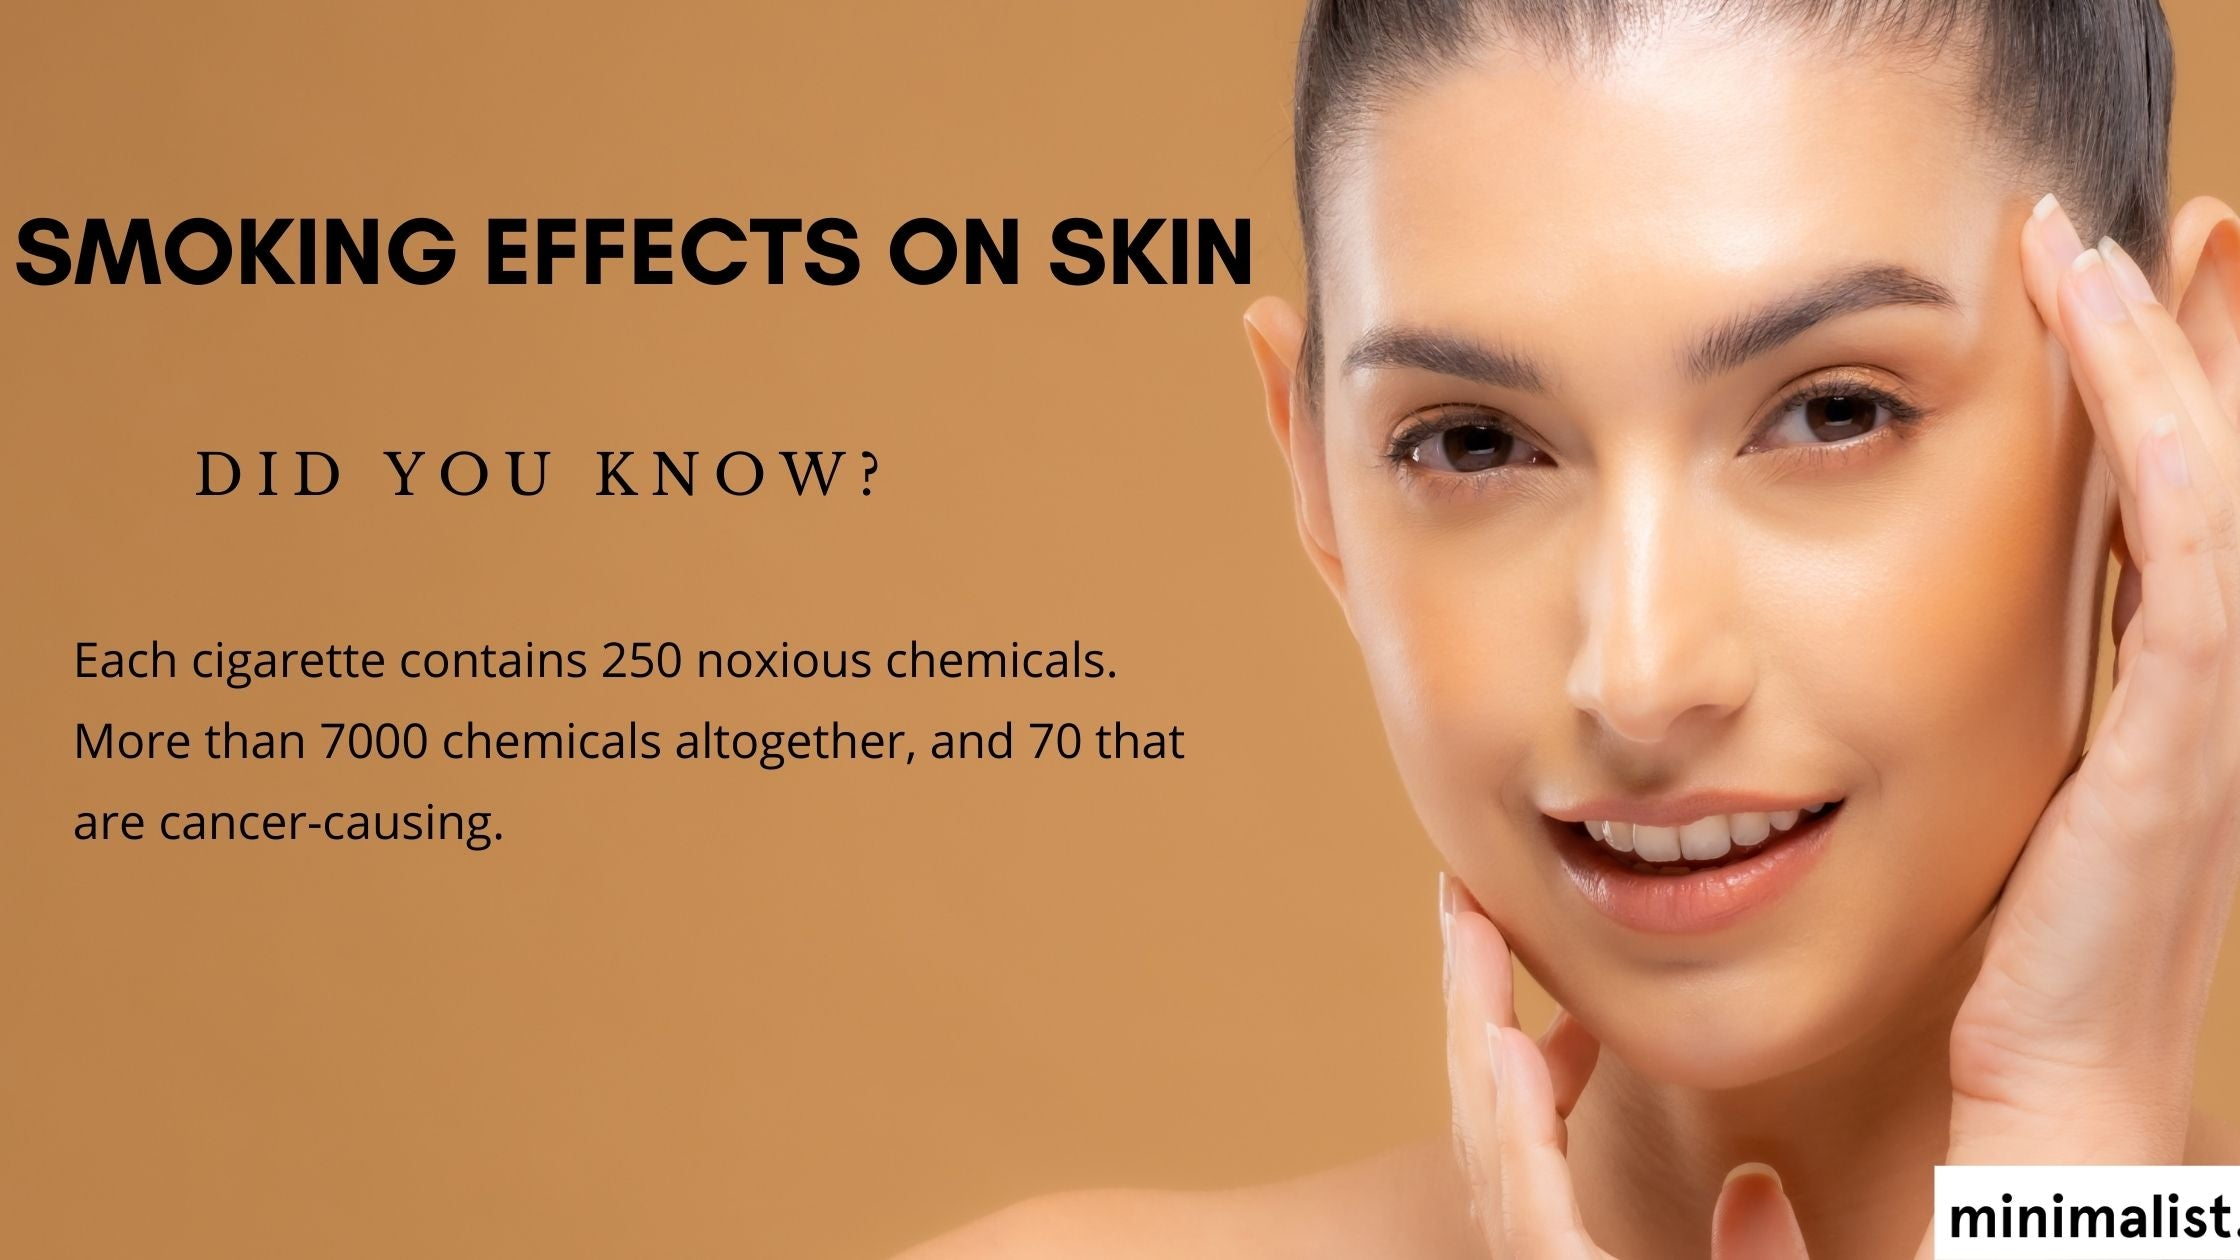 How does smoking damage your skin?